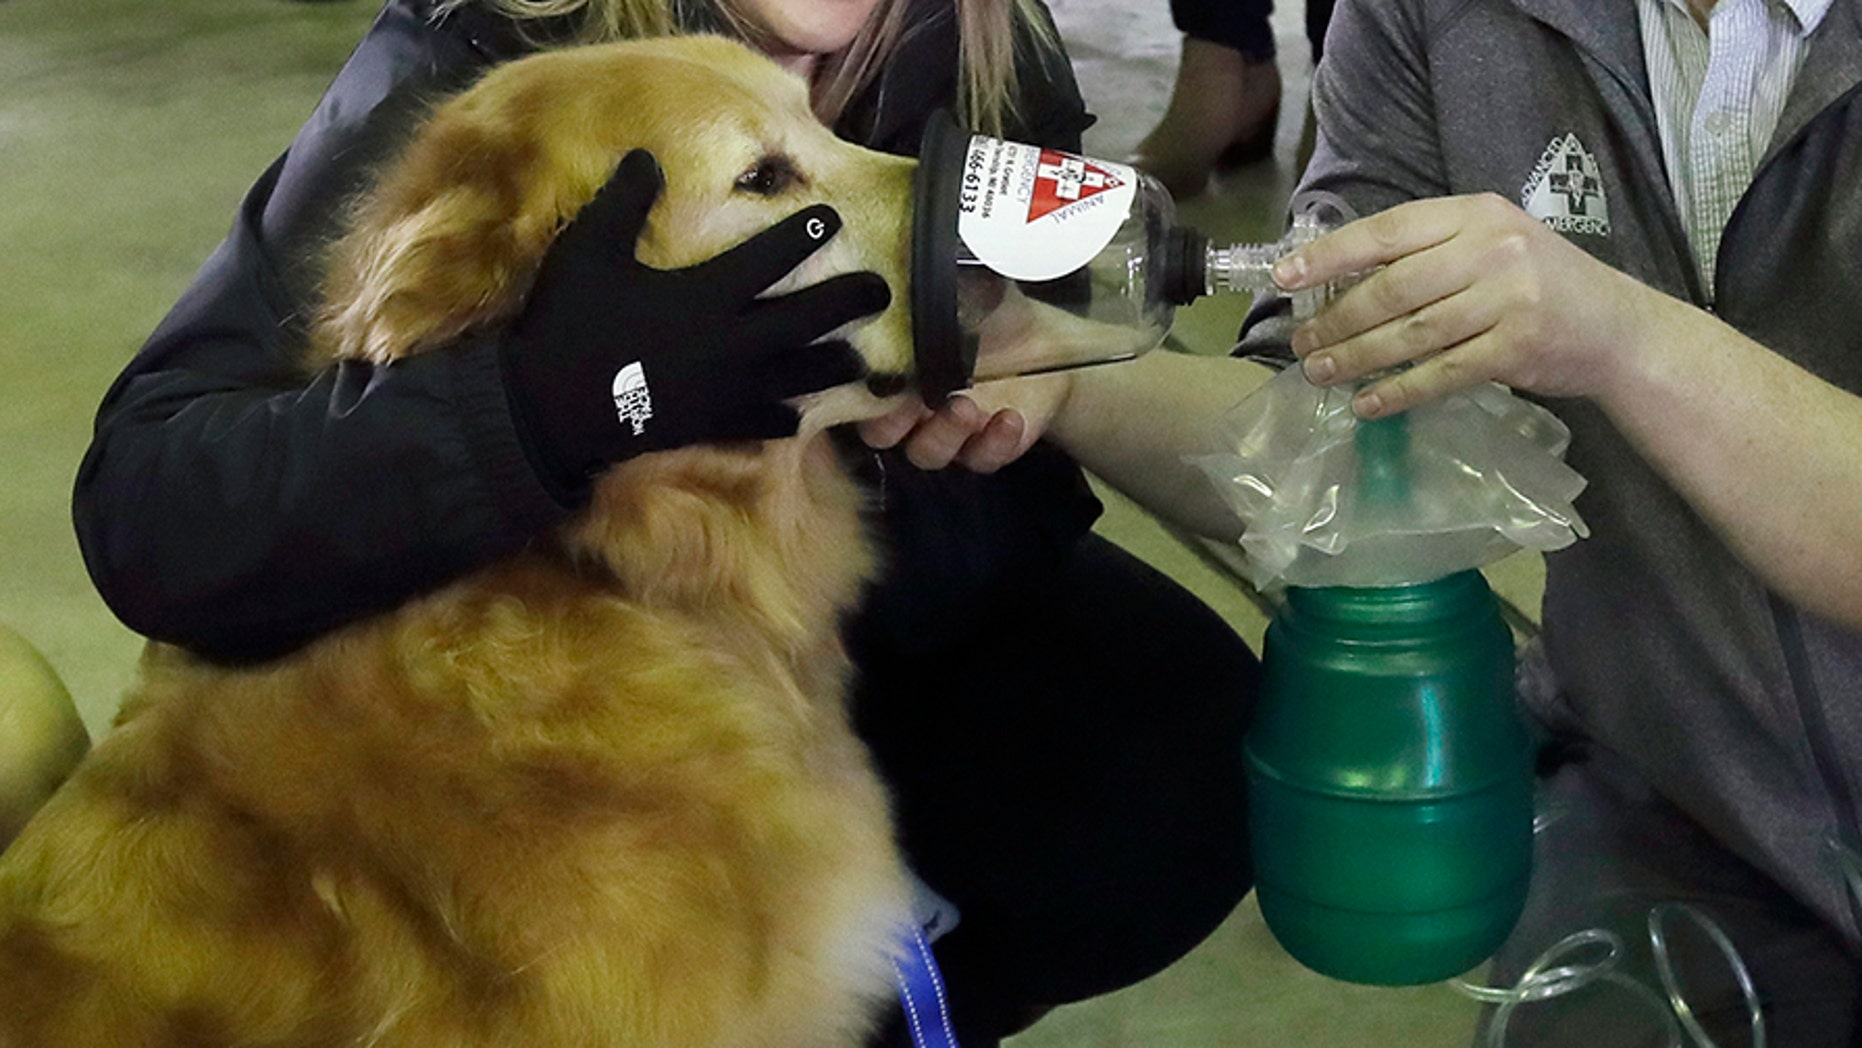 An oxygen mask is demonstrated on Smokey, a golden retriever, on Thursday in Detroit. The Detroit Fire Department is the recipient of more than 800 pet oxygen masks.